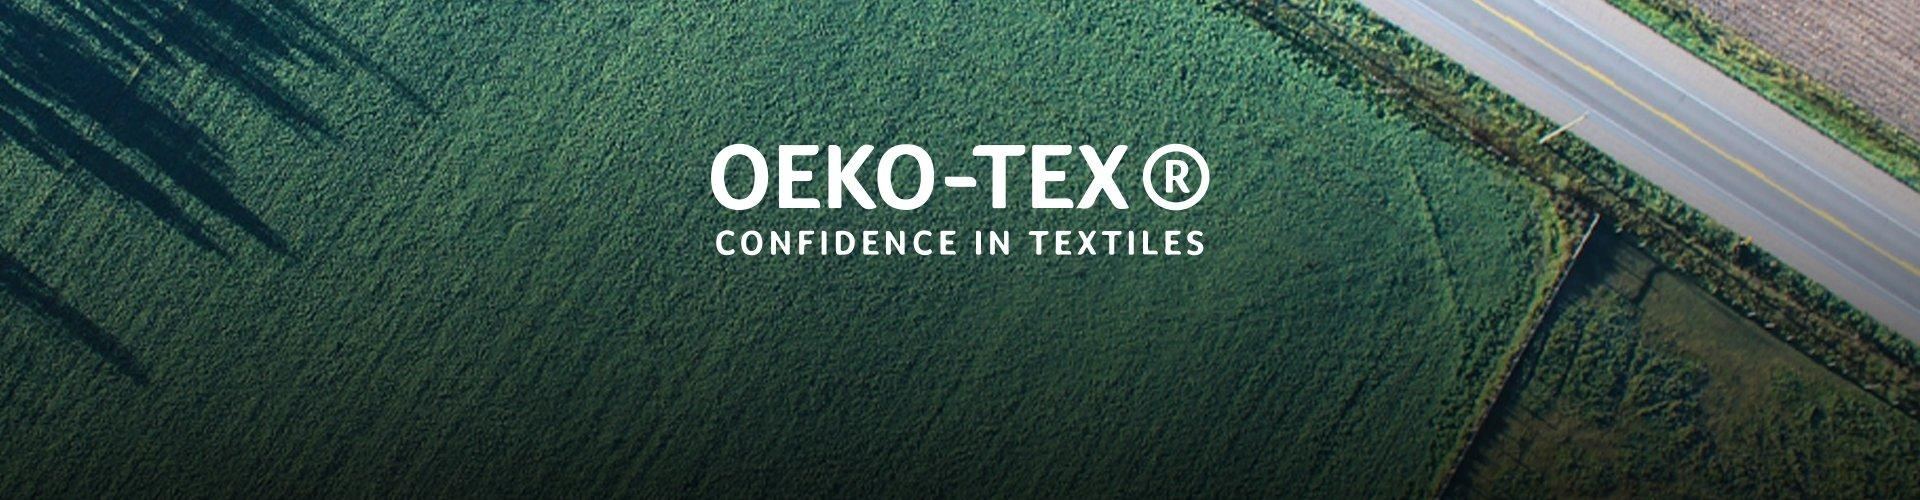 An aerial image of fields with a road running through them with text saying OEKO-TEX